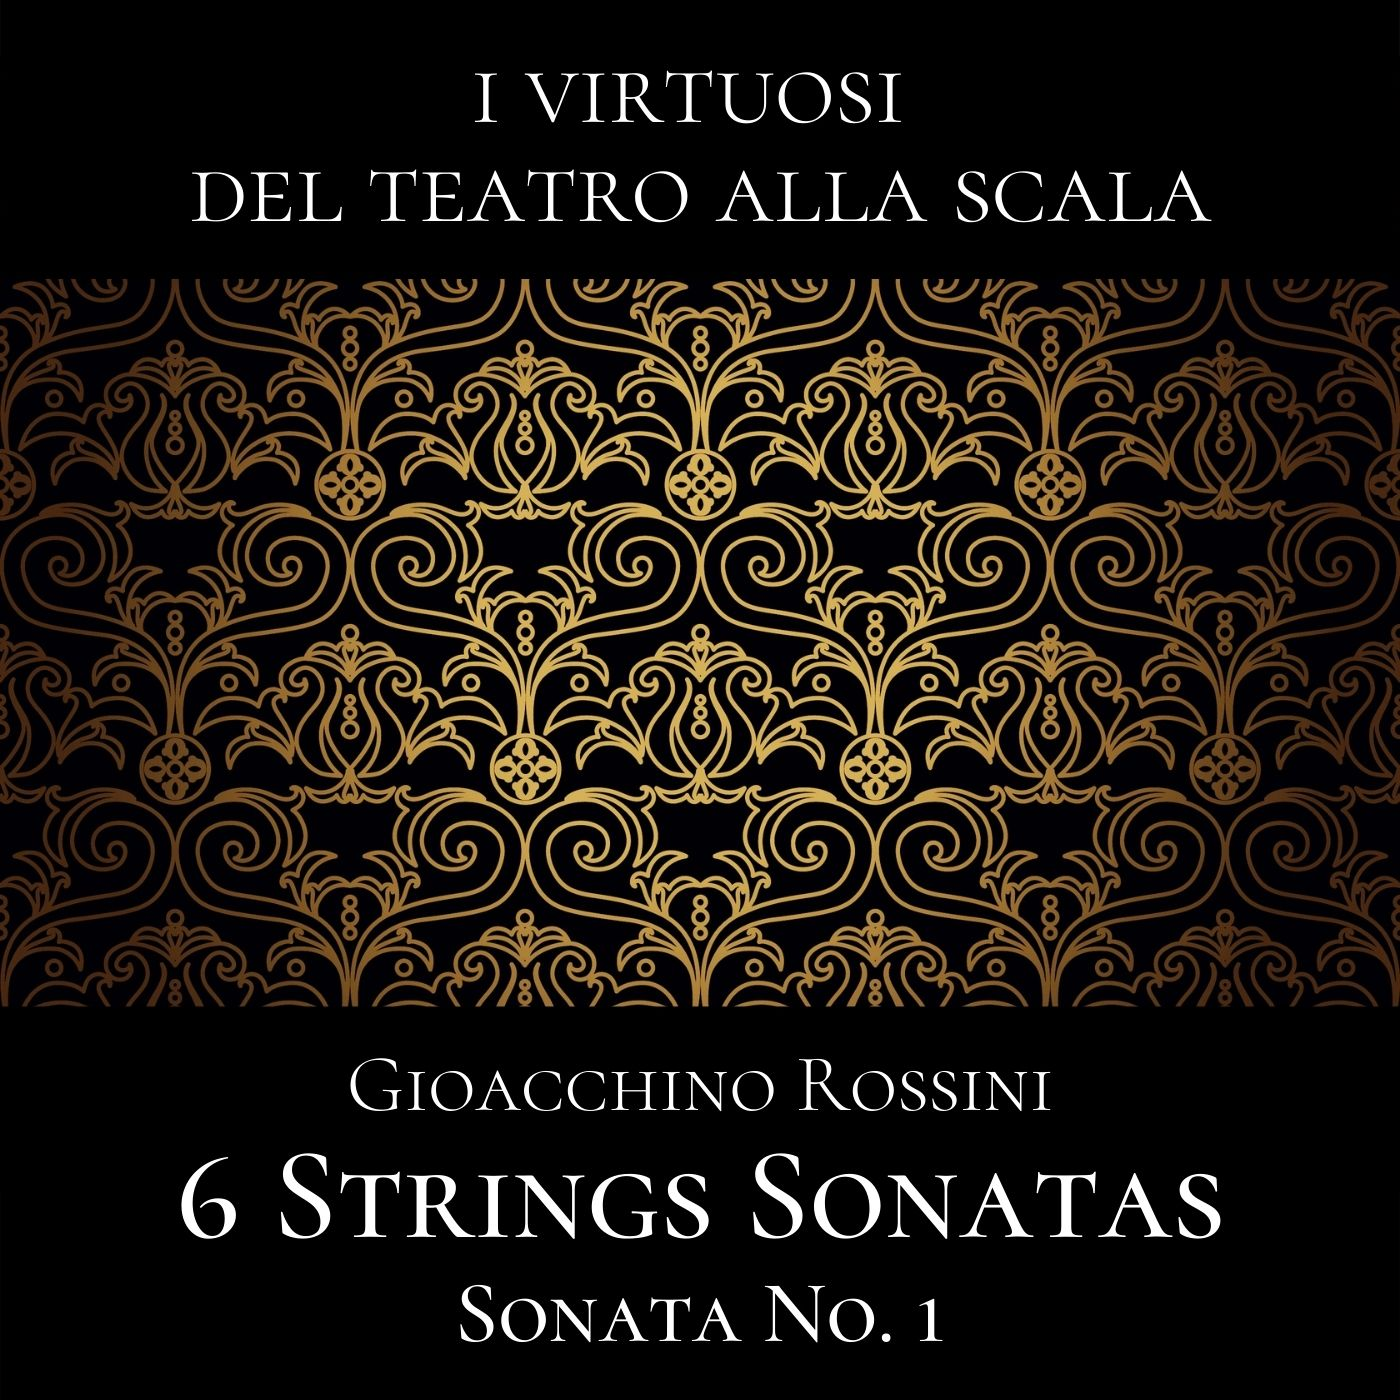 Rossini: 6 String Sonatas, Sonata No. 1